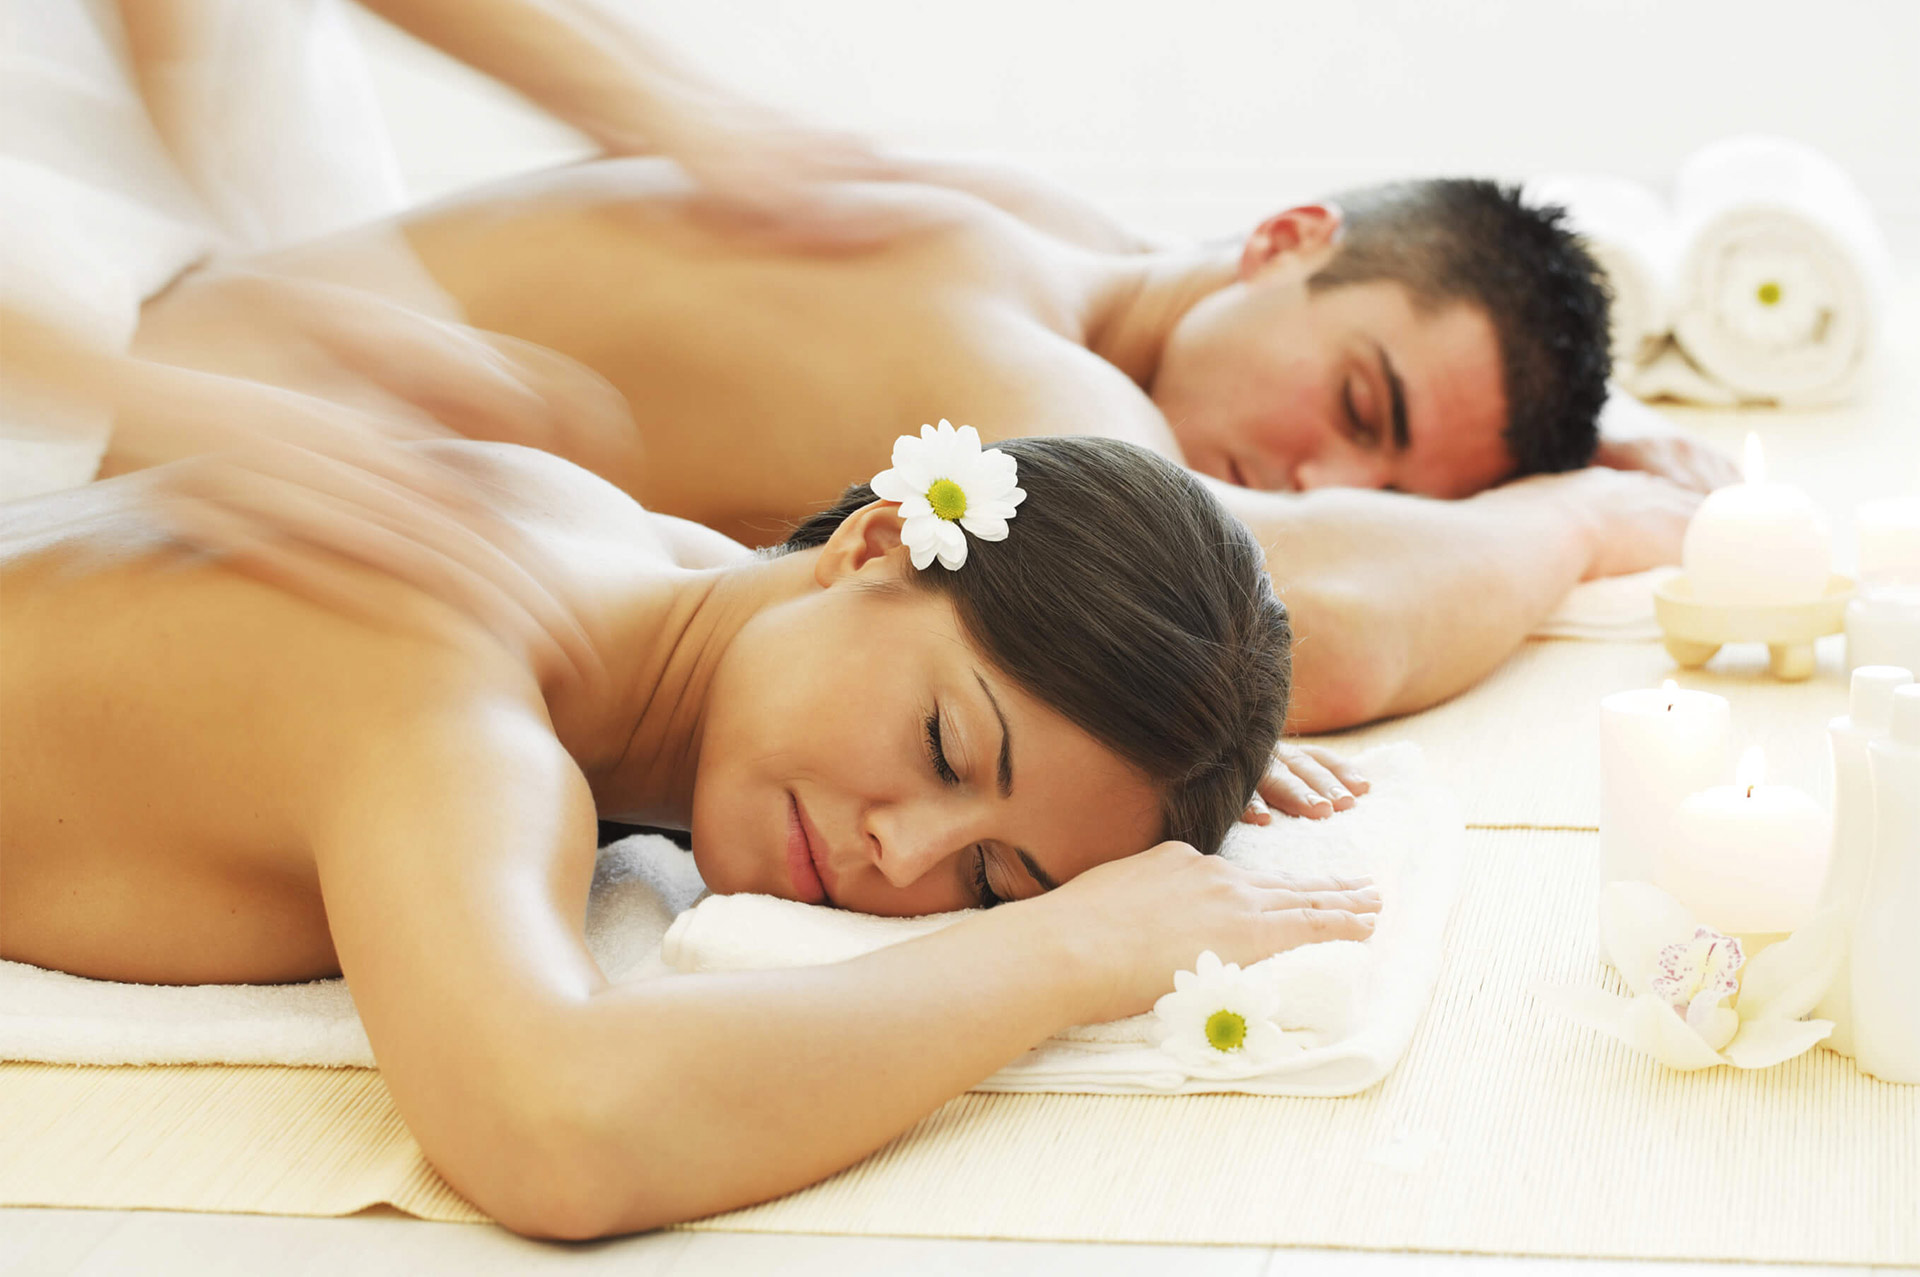 Our Services -- Deep Tissue, Swedish, Full Body and Hot Stone Massages